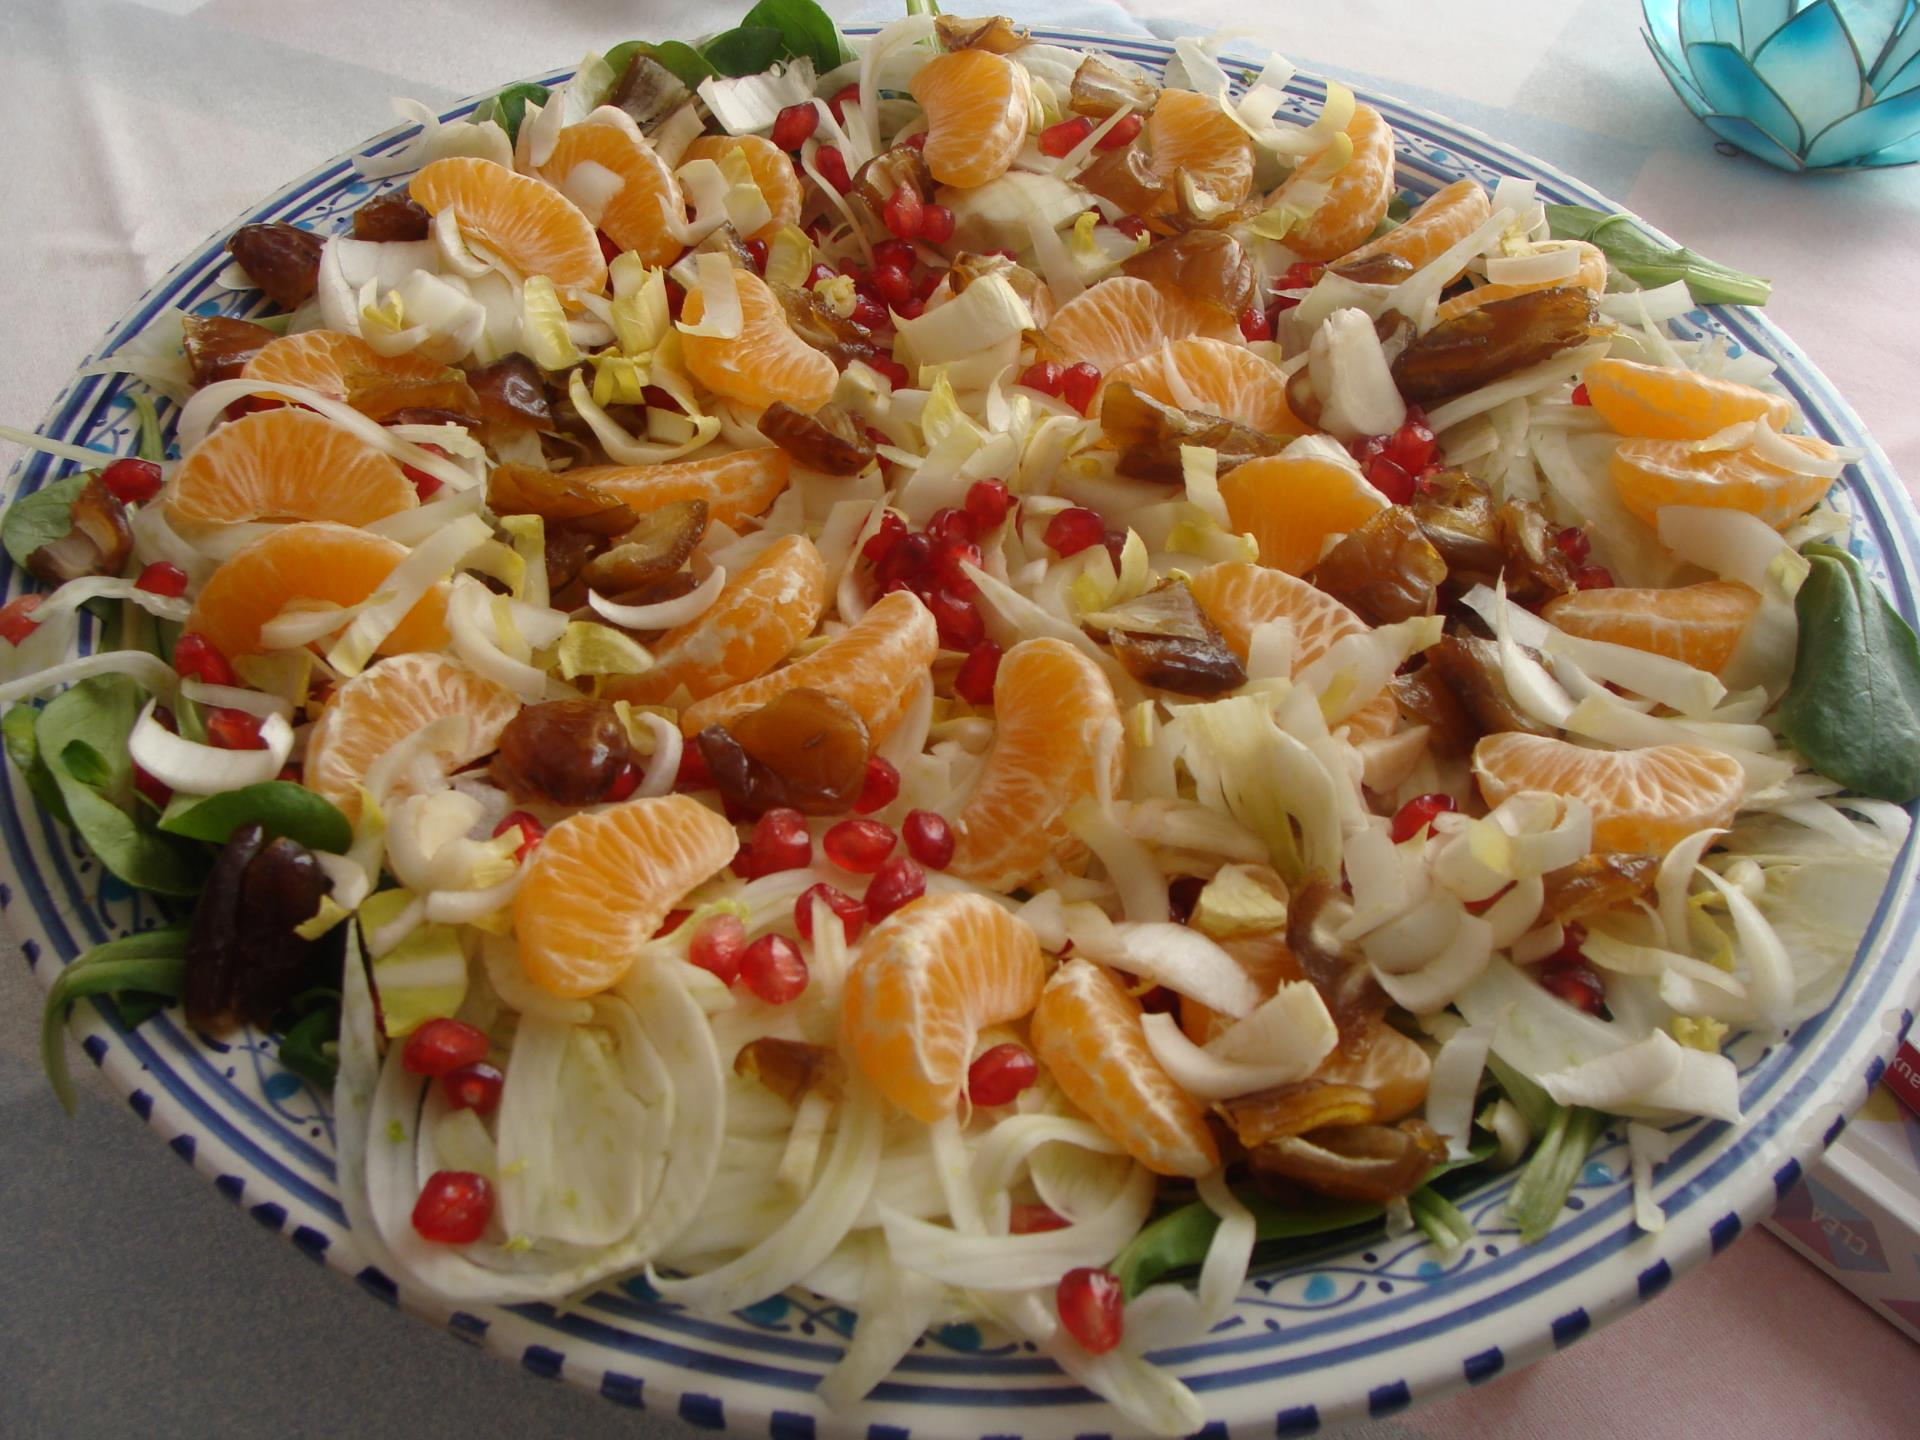 SALADE DE FETE AUX FENOUIL, ENDIVE, ORANGE, DATES